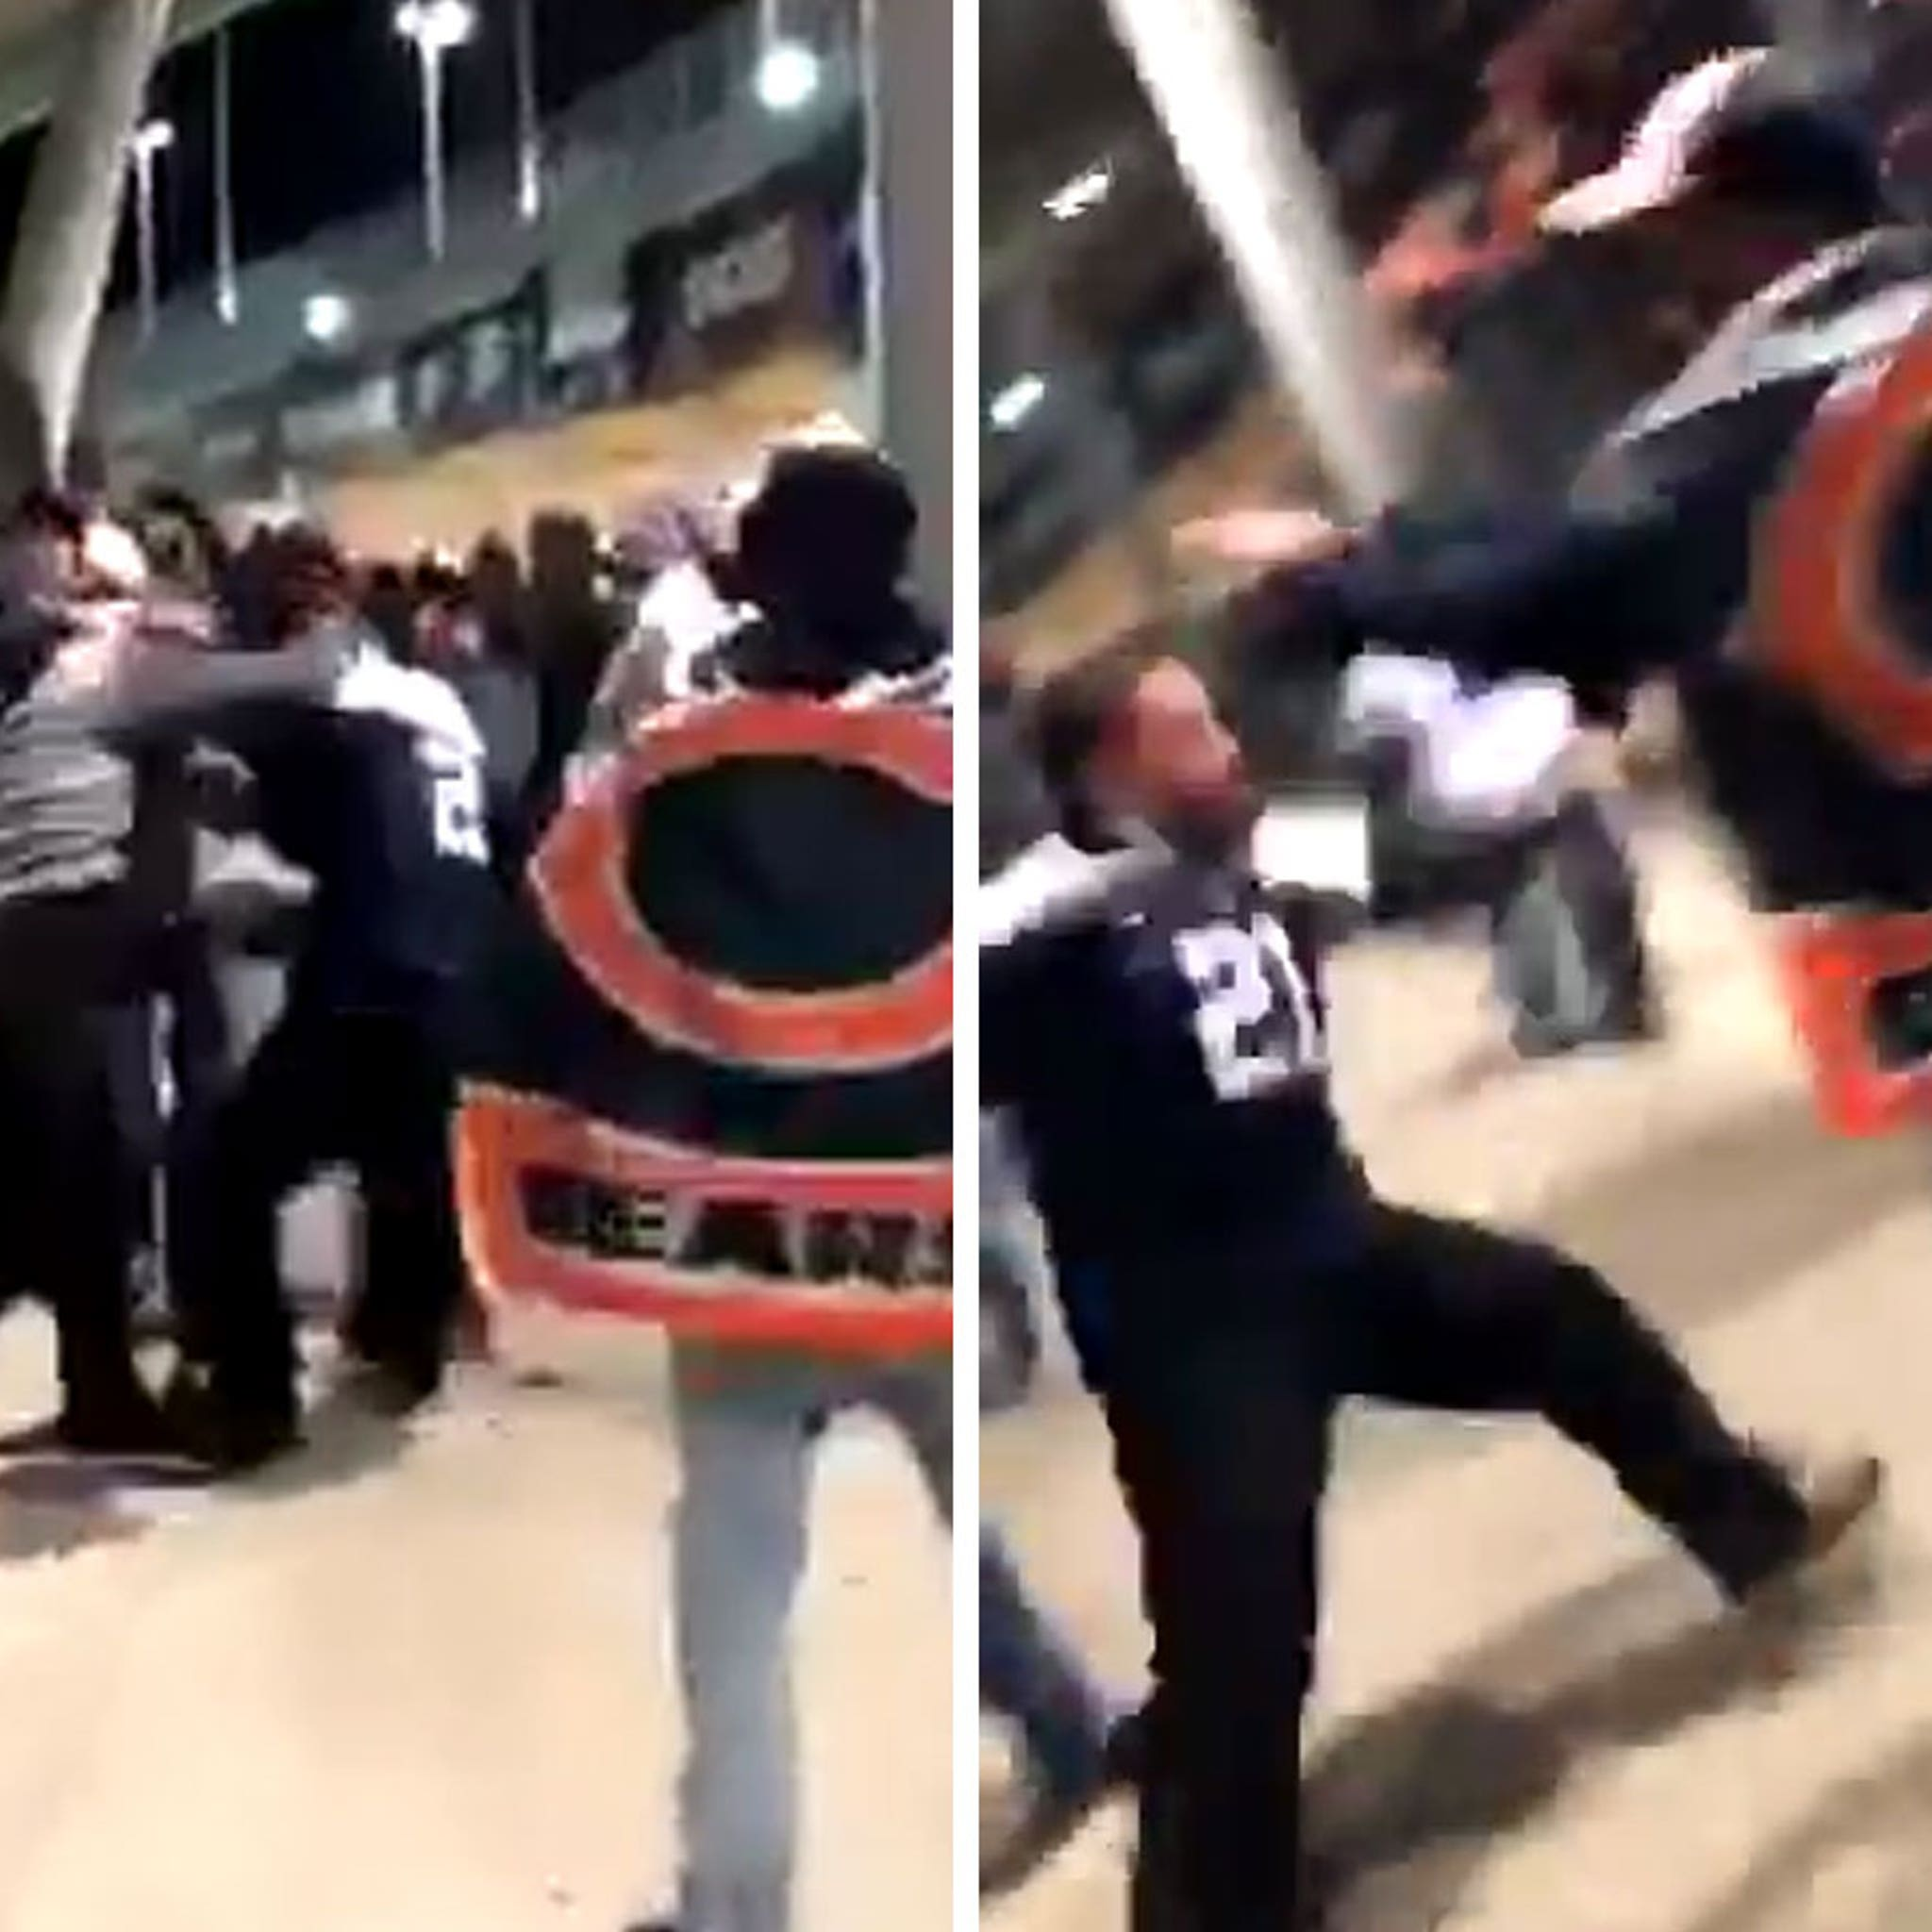 Chicago Bears Fans Beat Up Cowboys Fans at Soldier Field in Fight Video